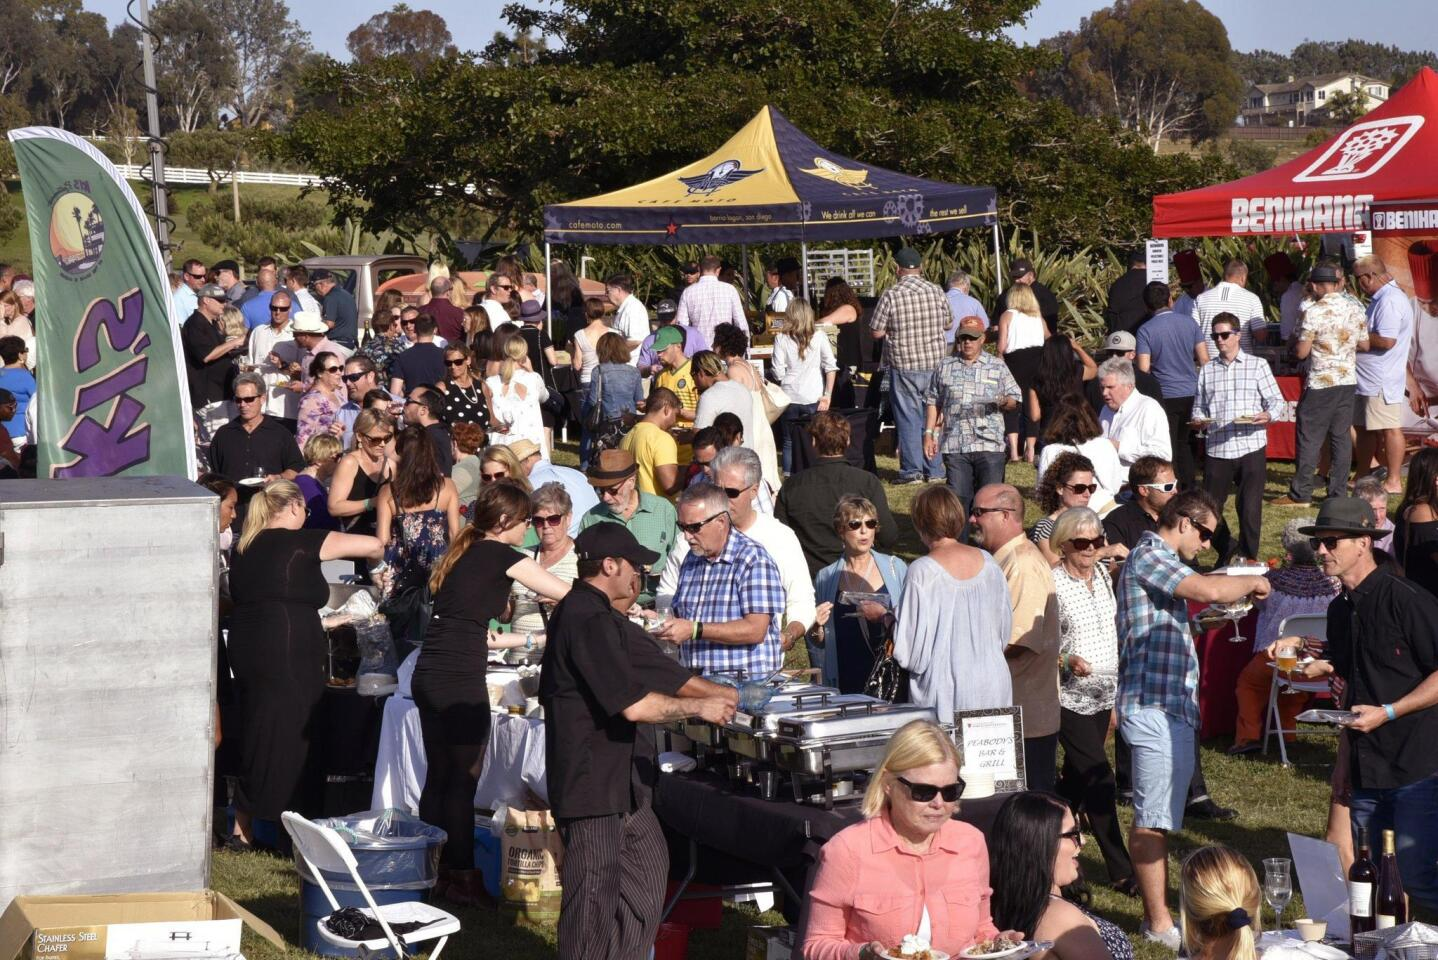 The Food and Wine Festival continues to be a popular local event